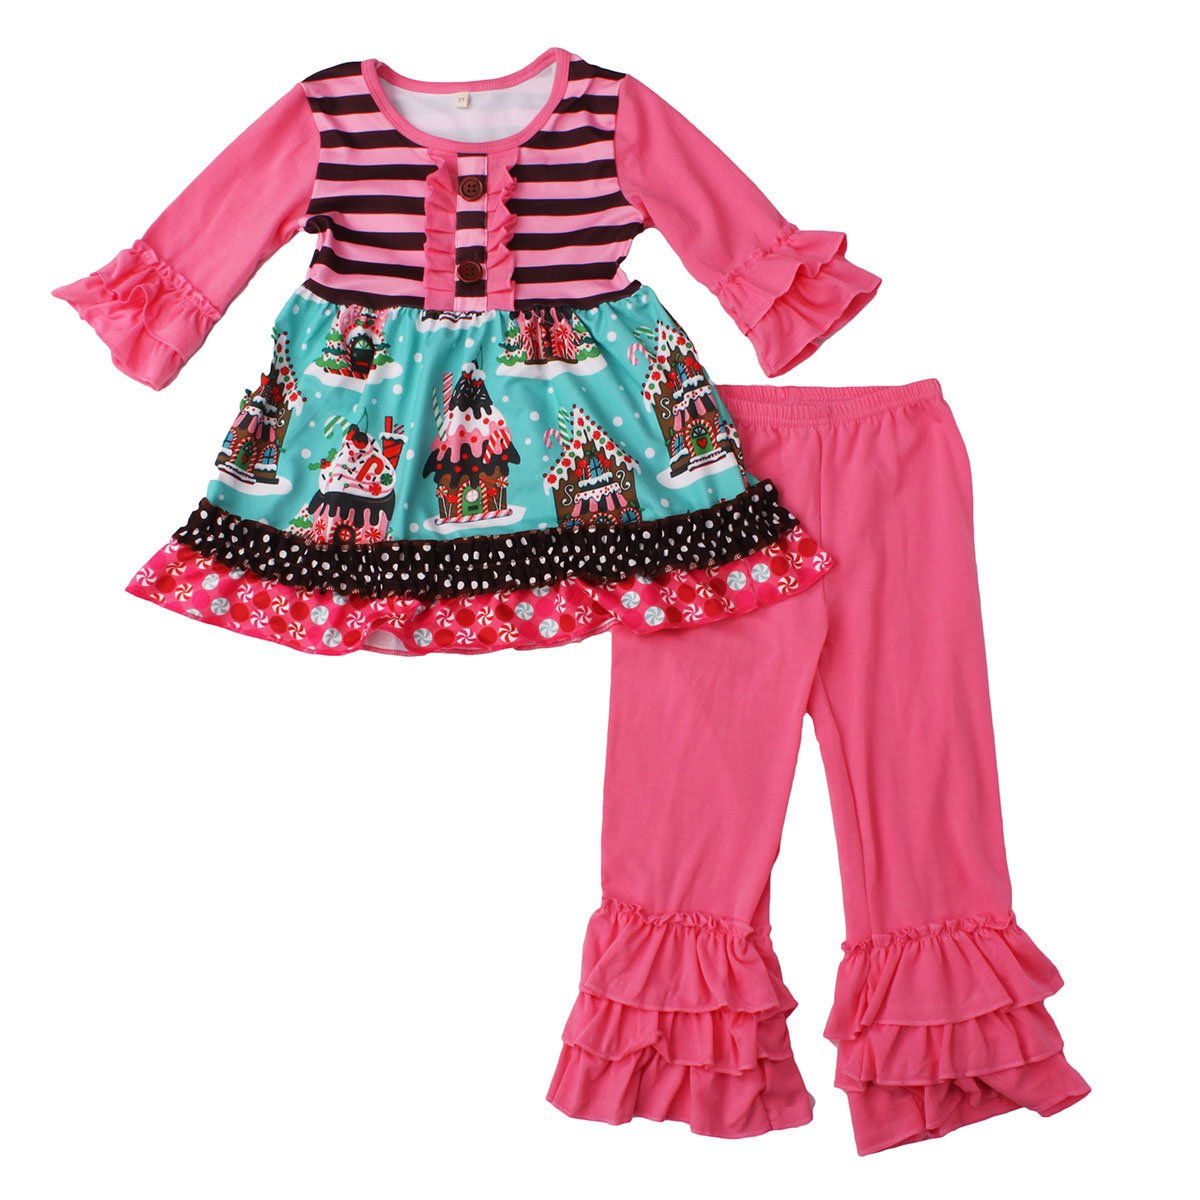 e6309f4d79 Girl boutique clothing set with fancy color and unique style, great for  Birthday/theme party, Halloween dress up, Christmas, photo shoots, ...